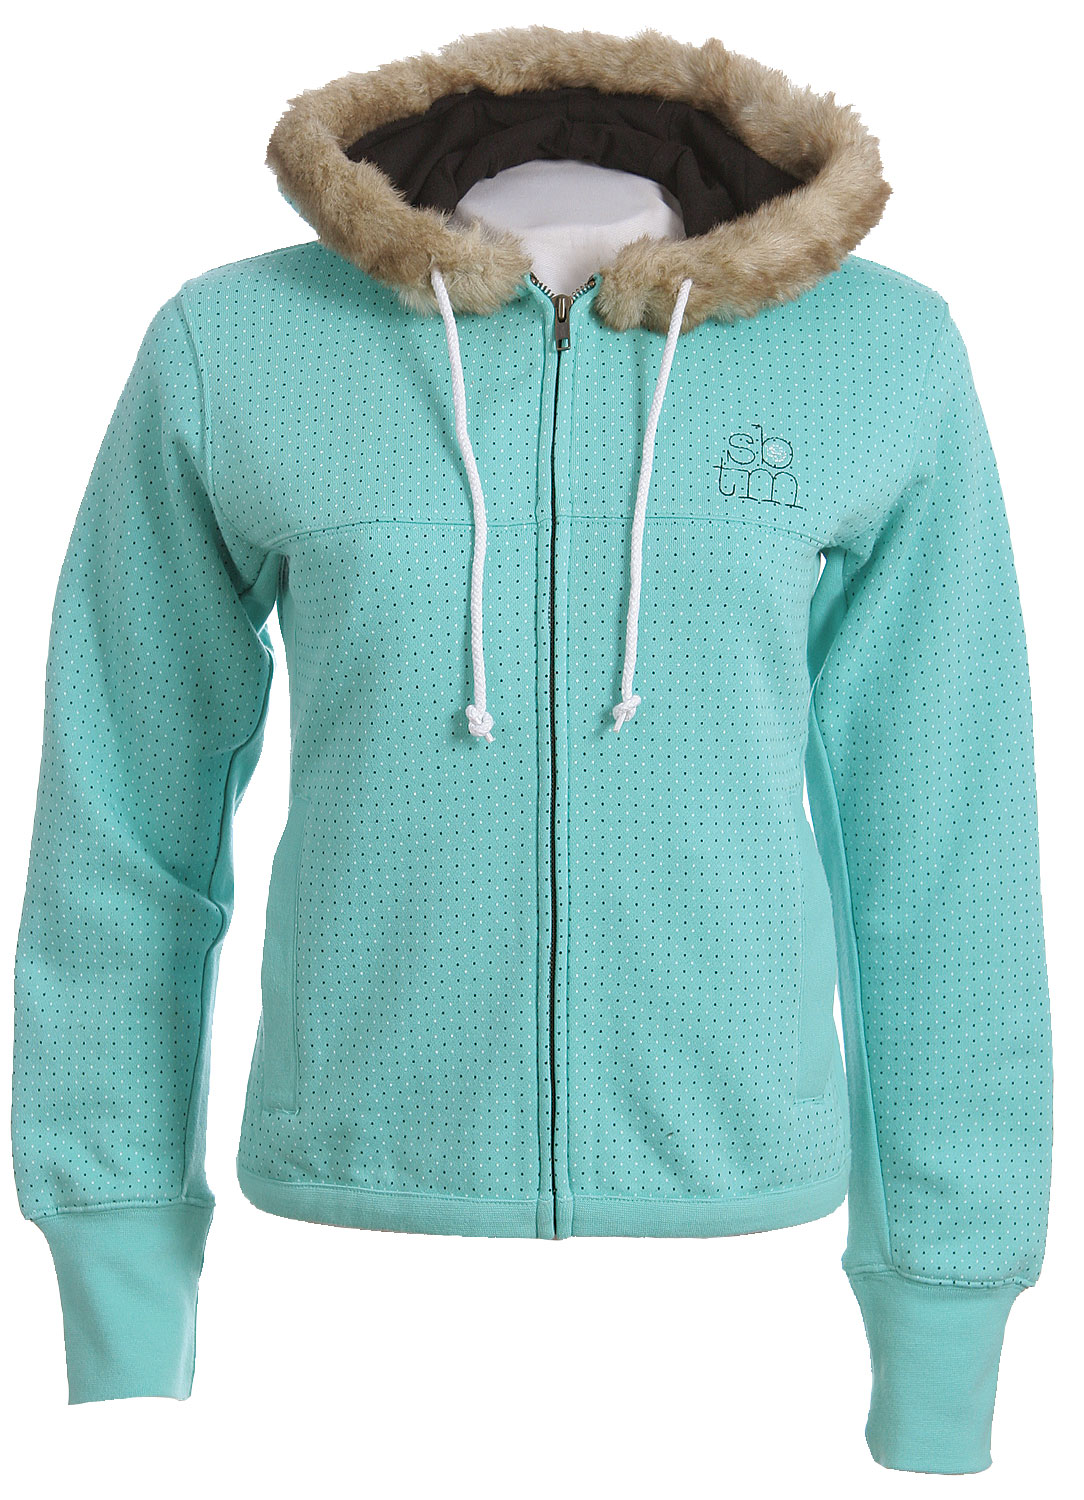 Cute, cozy, and comfortable this feminine hoodie will show off your unique style. With its polka dot design and fur lined hood, the Special Blend Dot Zip Hoodie combine femininity and style into one slick looking hoodie! This sweatshirt is made from 80% cotton and 20% polyester for a lightweight but warm feel. It features two front pockets and a drawstring hood to provide utility in addition to style. The Special Blend Dot Zip Hoodie is a great addition to any wardrobe.Key Features of The Special Blend Dot Women's Zip Hoodie: Regular Fit All Over Polks Dot Screen Print 80% Cotton / 20% Polyester Fur Lined Hood - $29.95